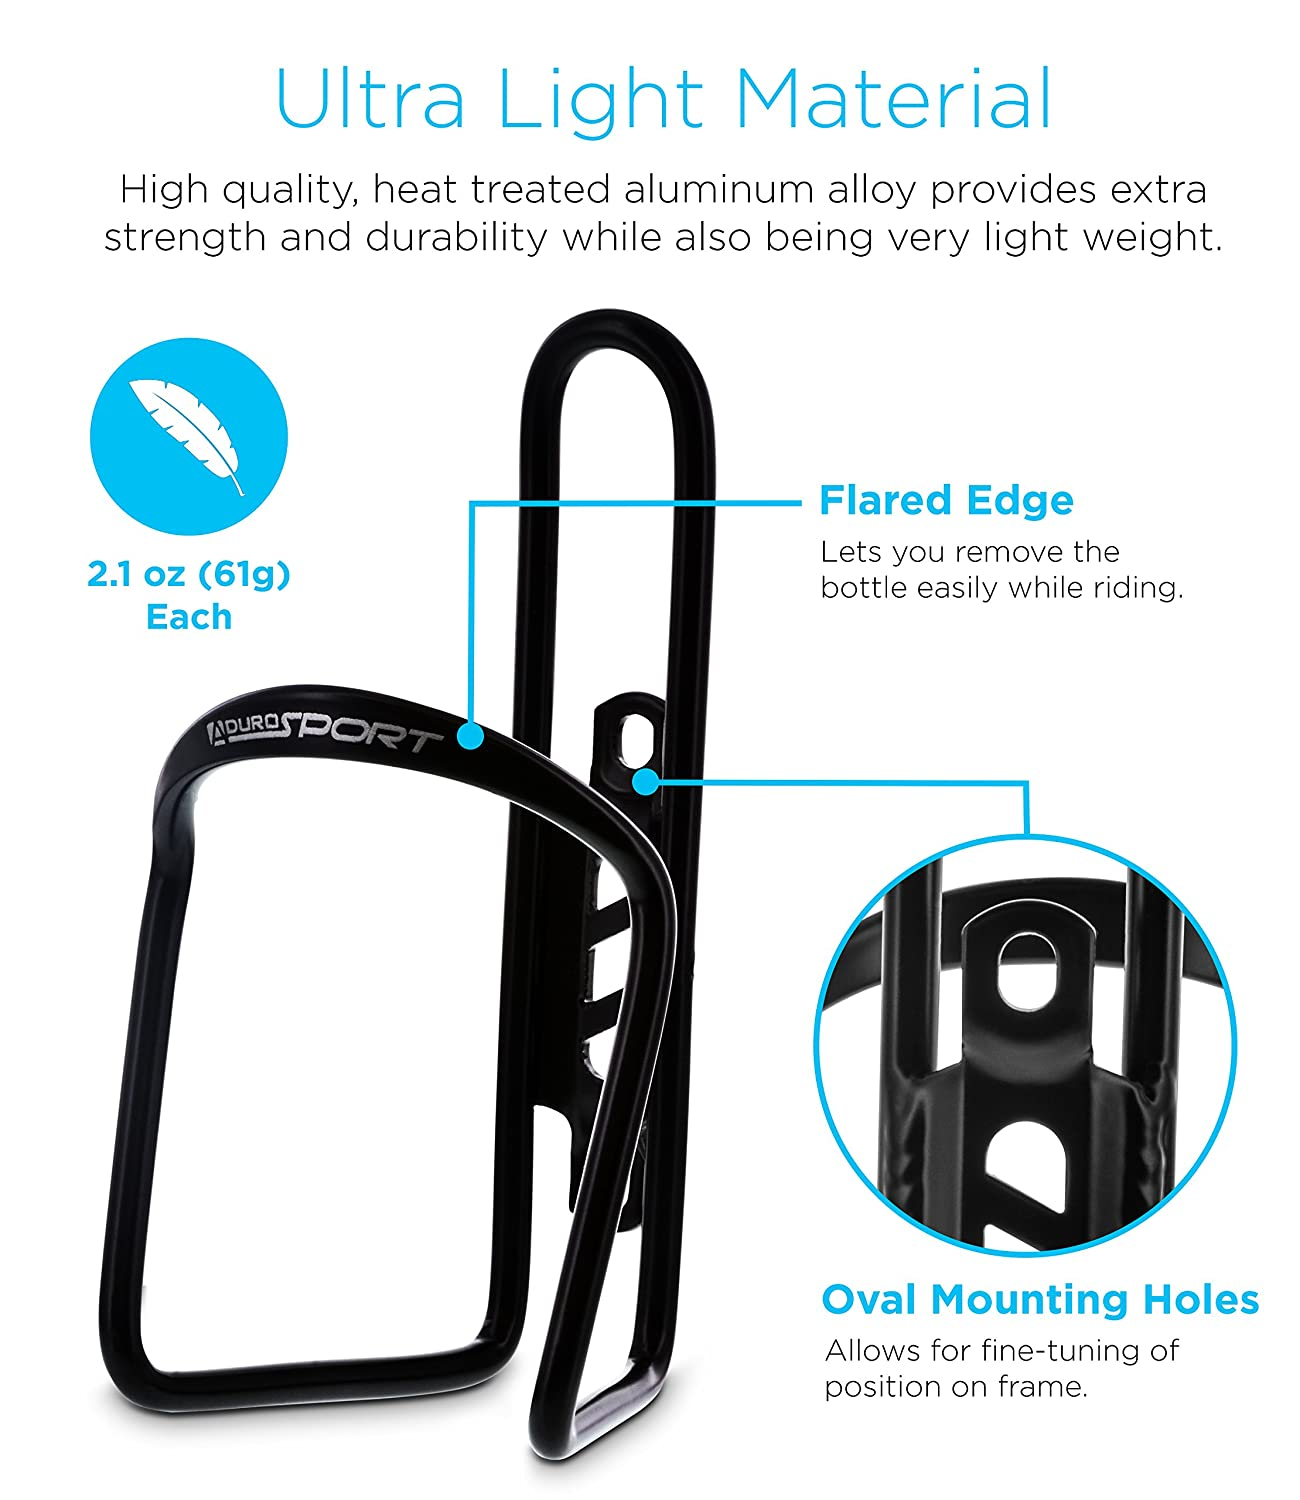 2X Pack Bicycle Water Bottle Mount Lightweight for Cycling Fits Any Bike with Easy Installation S-ABC2PK-01 Aduro Bike Water Bottle Holder Aluminum Cage,